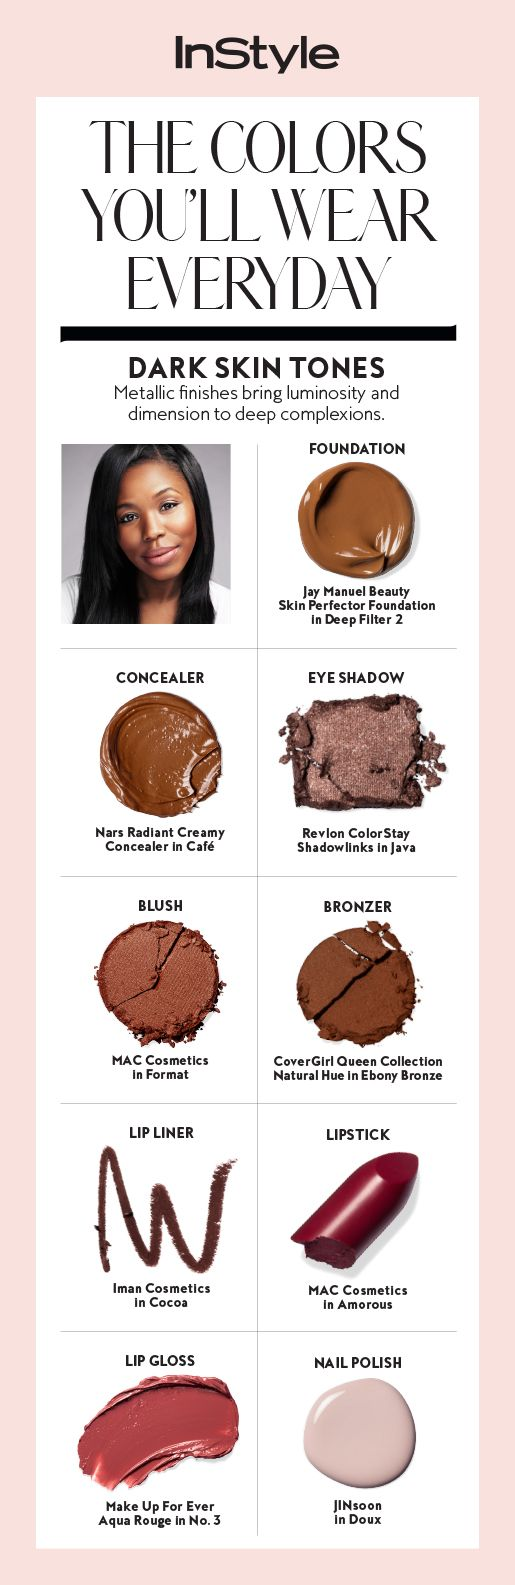 For Dark Skin Tones, Metallic Finishes Bring Luminosity And Dimension To  Deepplexions